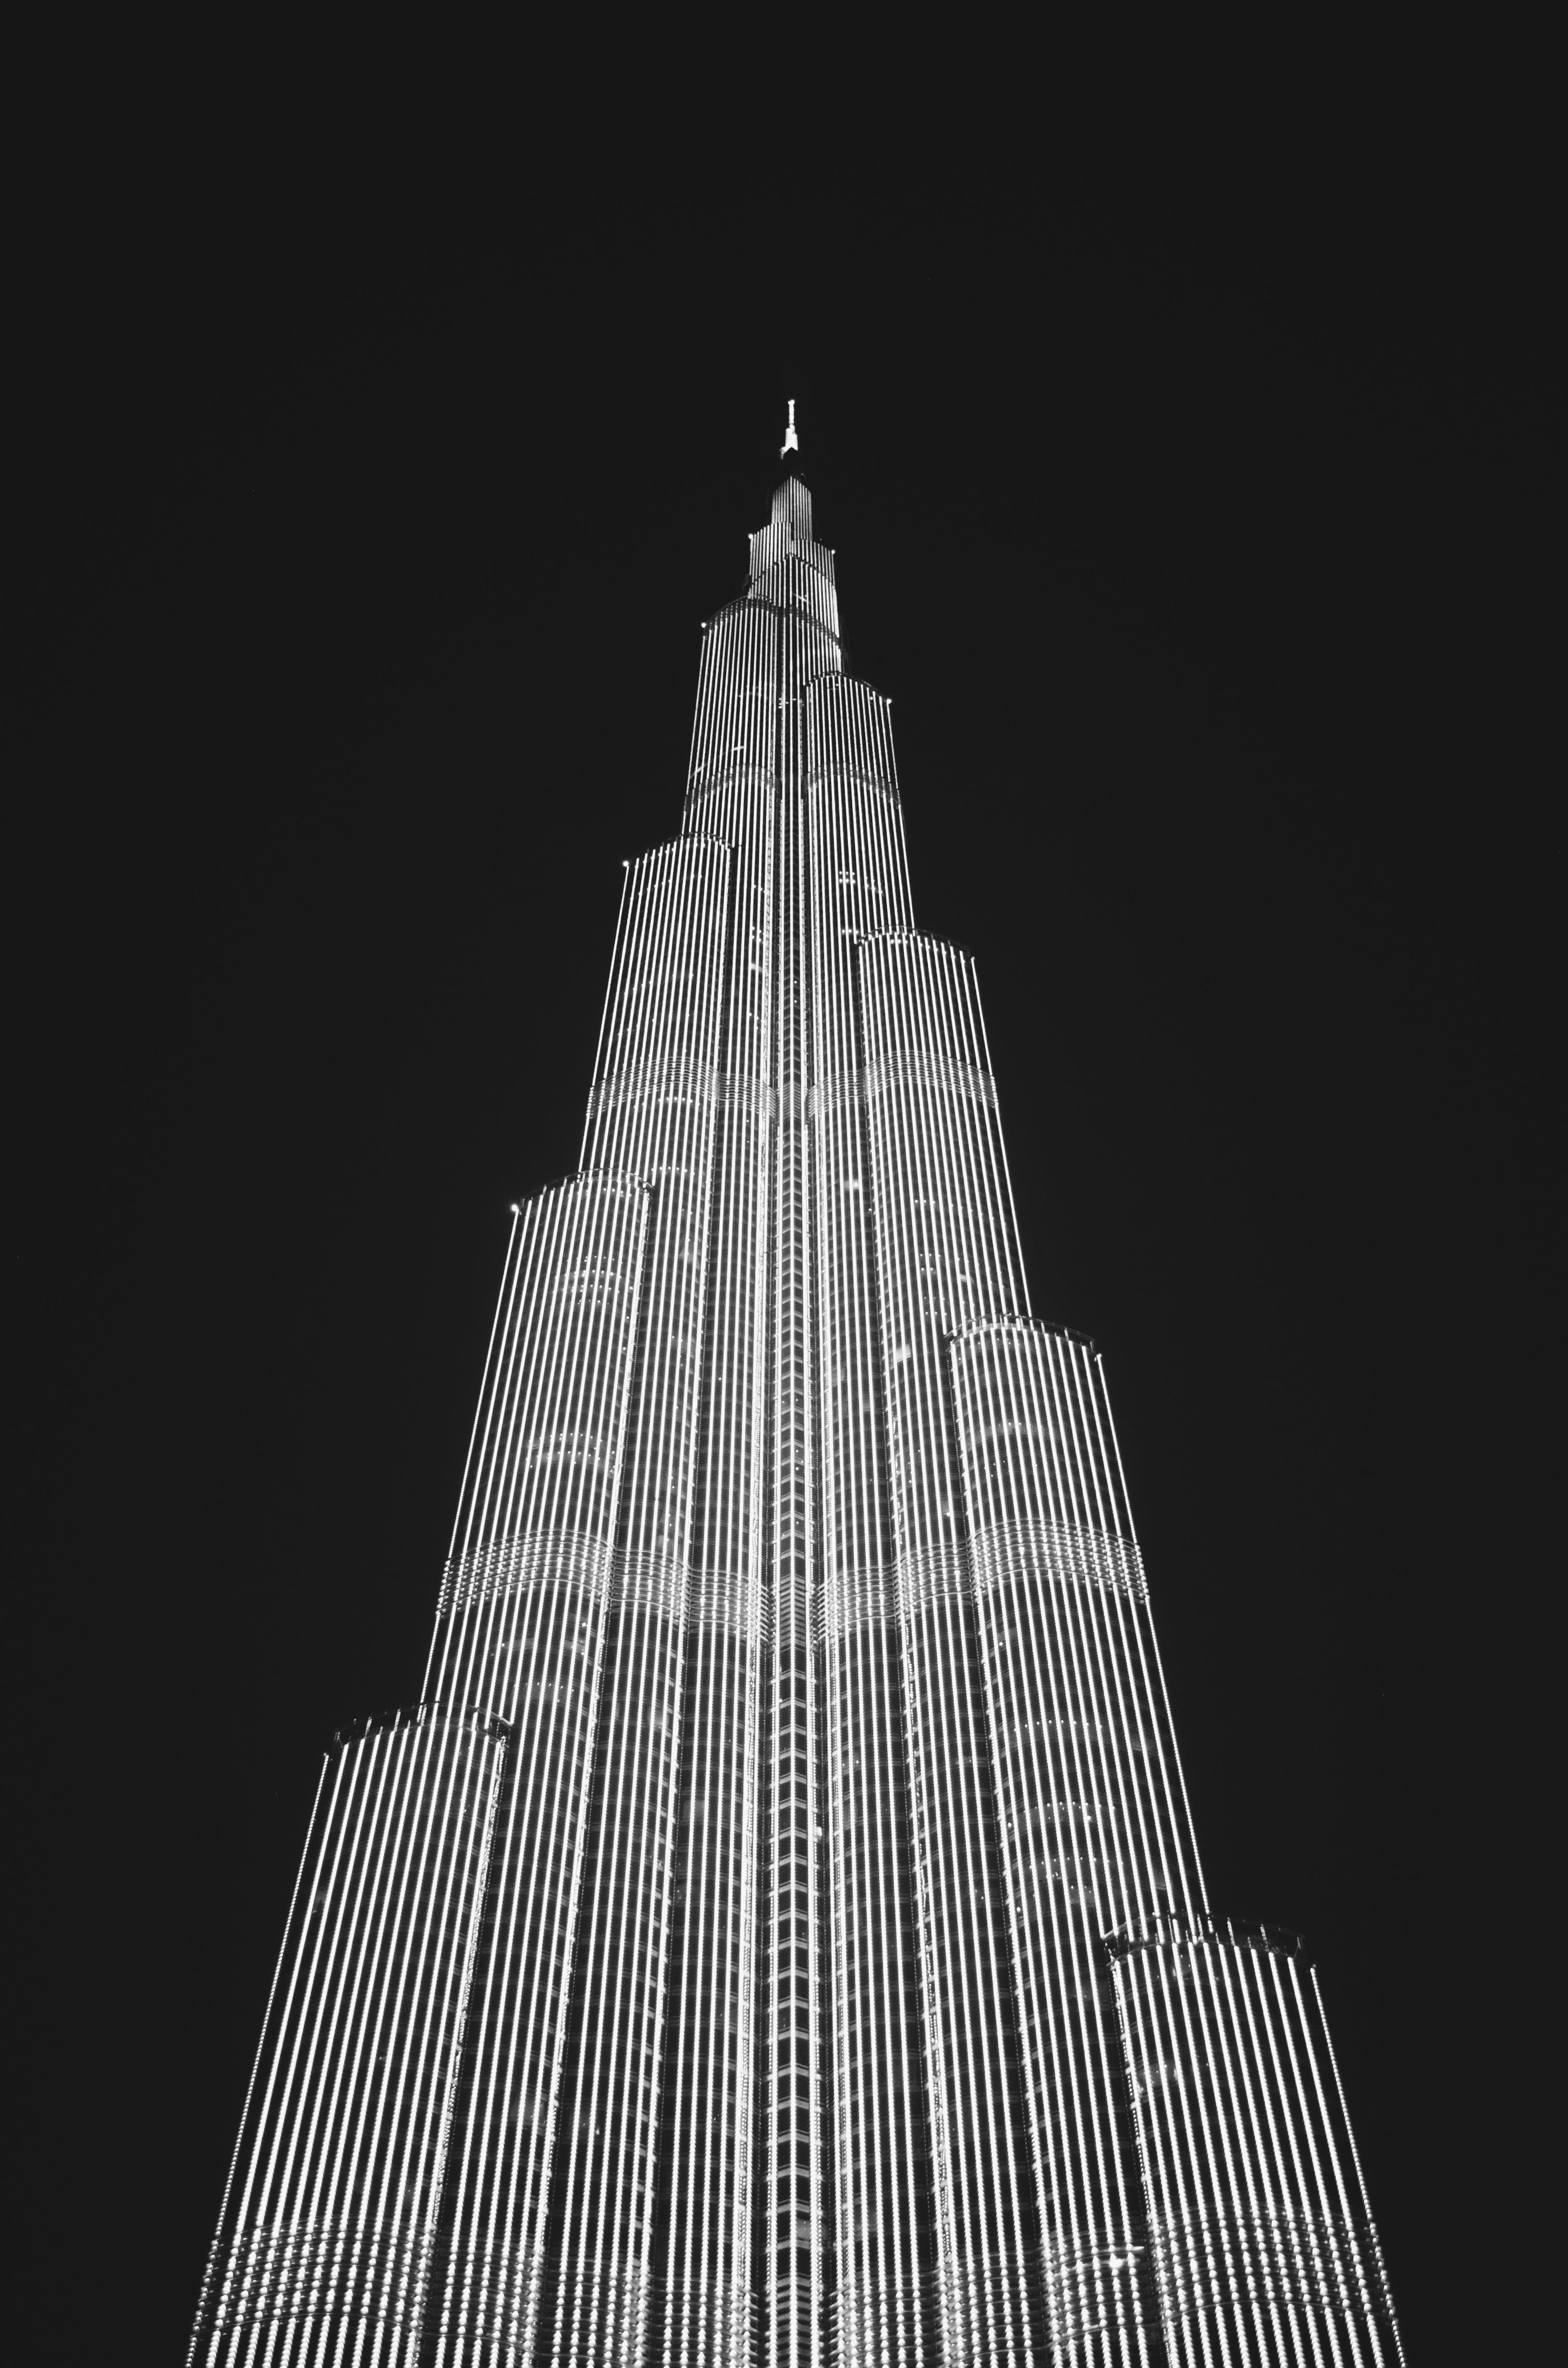 Low Angle View of Skyscraper Against Sky at Night